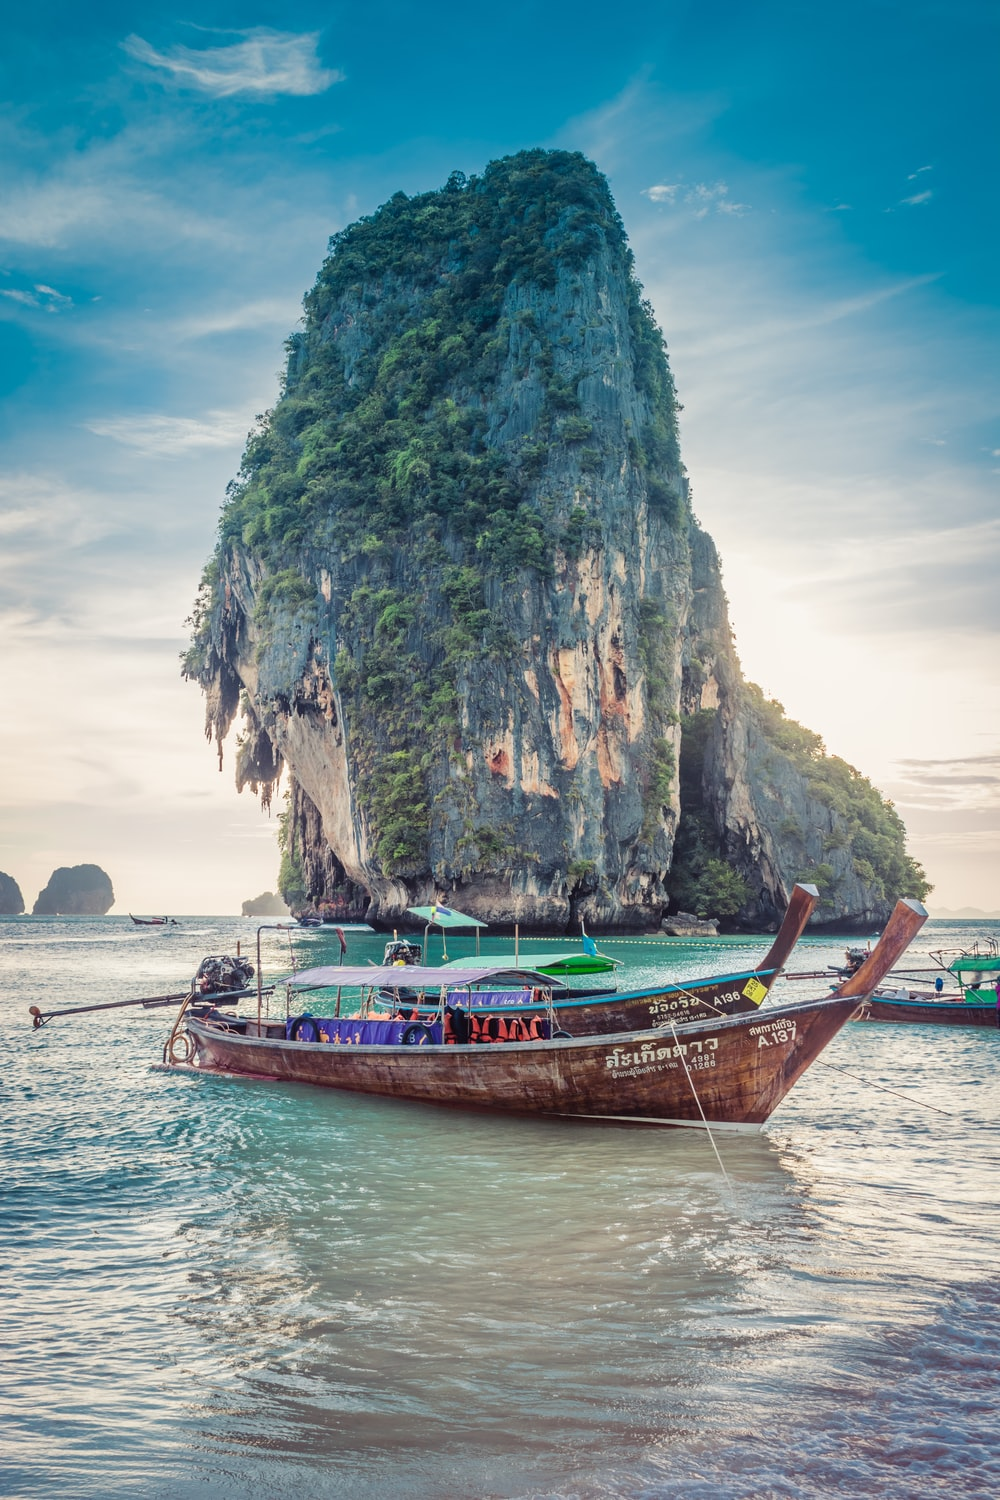 500 Thailand Pictures Hd Download Free Images On Unsplash